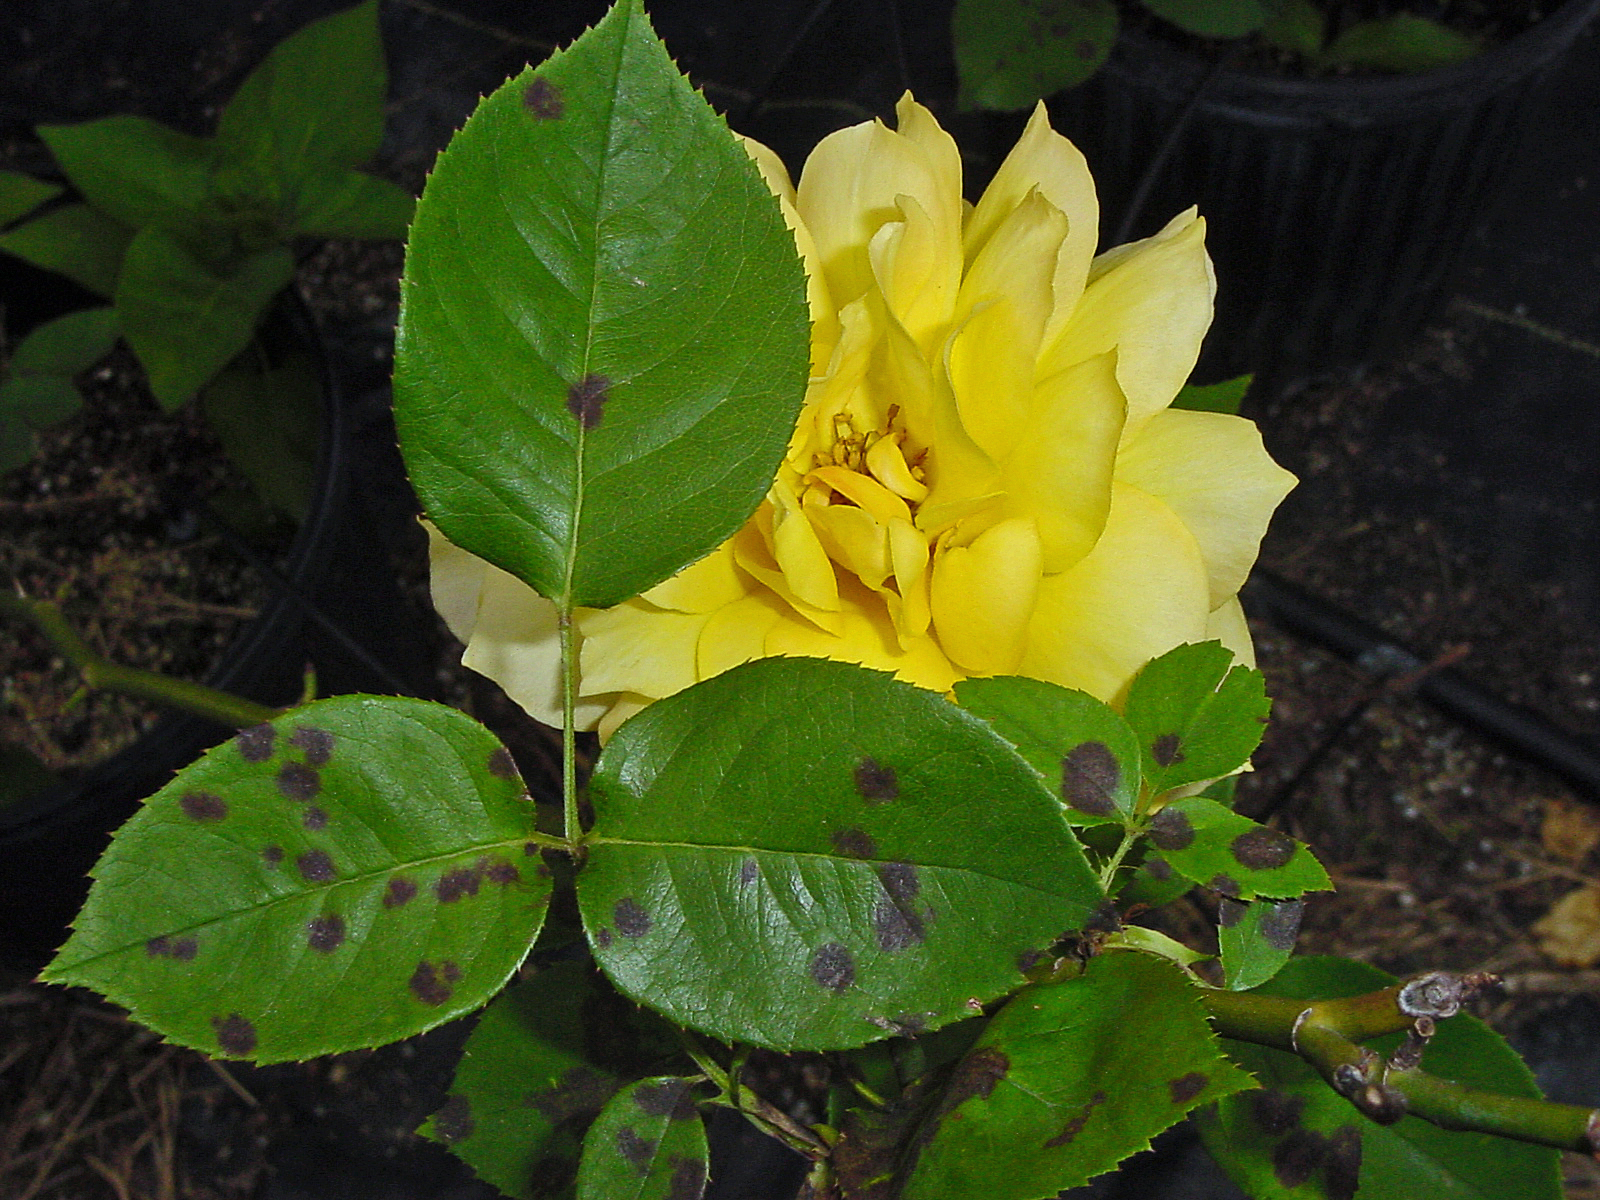 Yellow Rose Bushes Types This yellow rose is veryYellow Rose Bushes Types